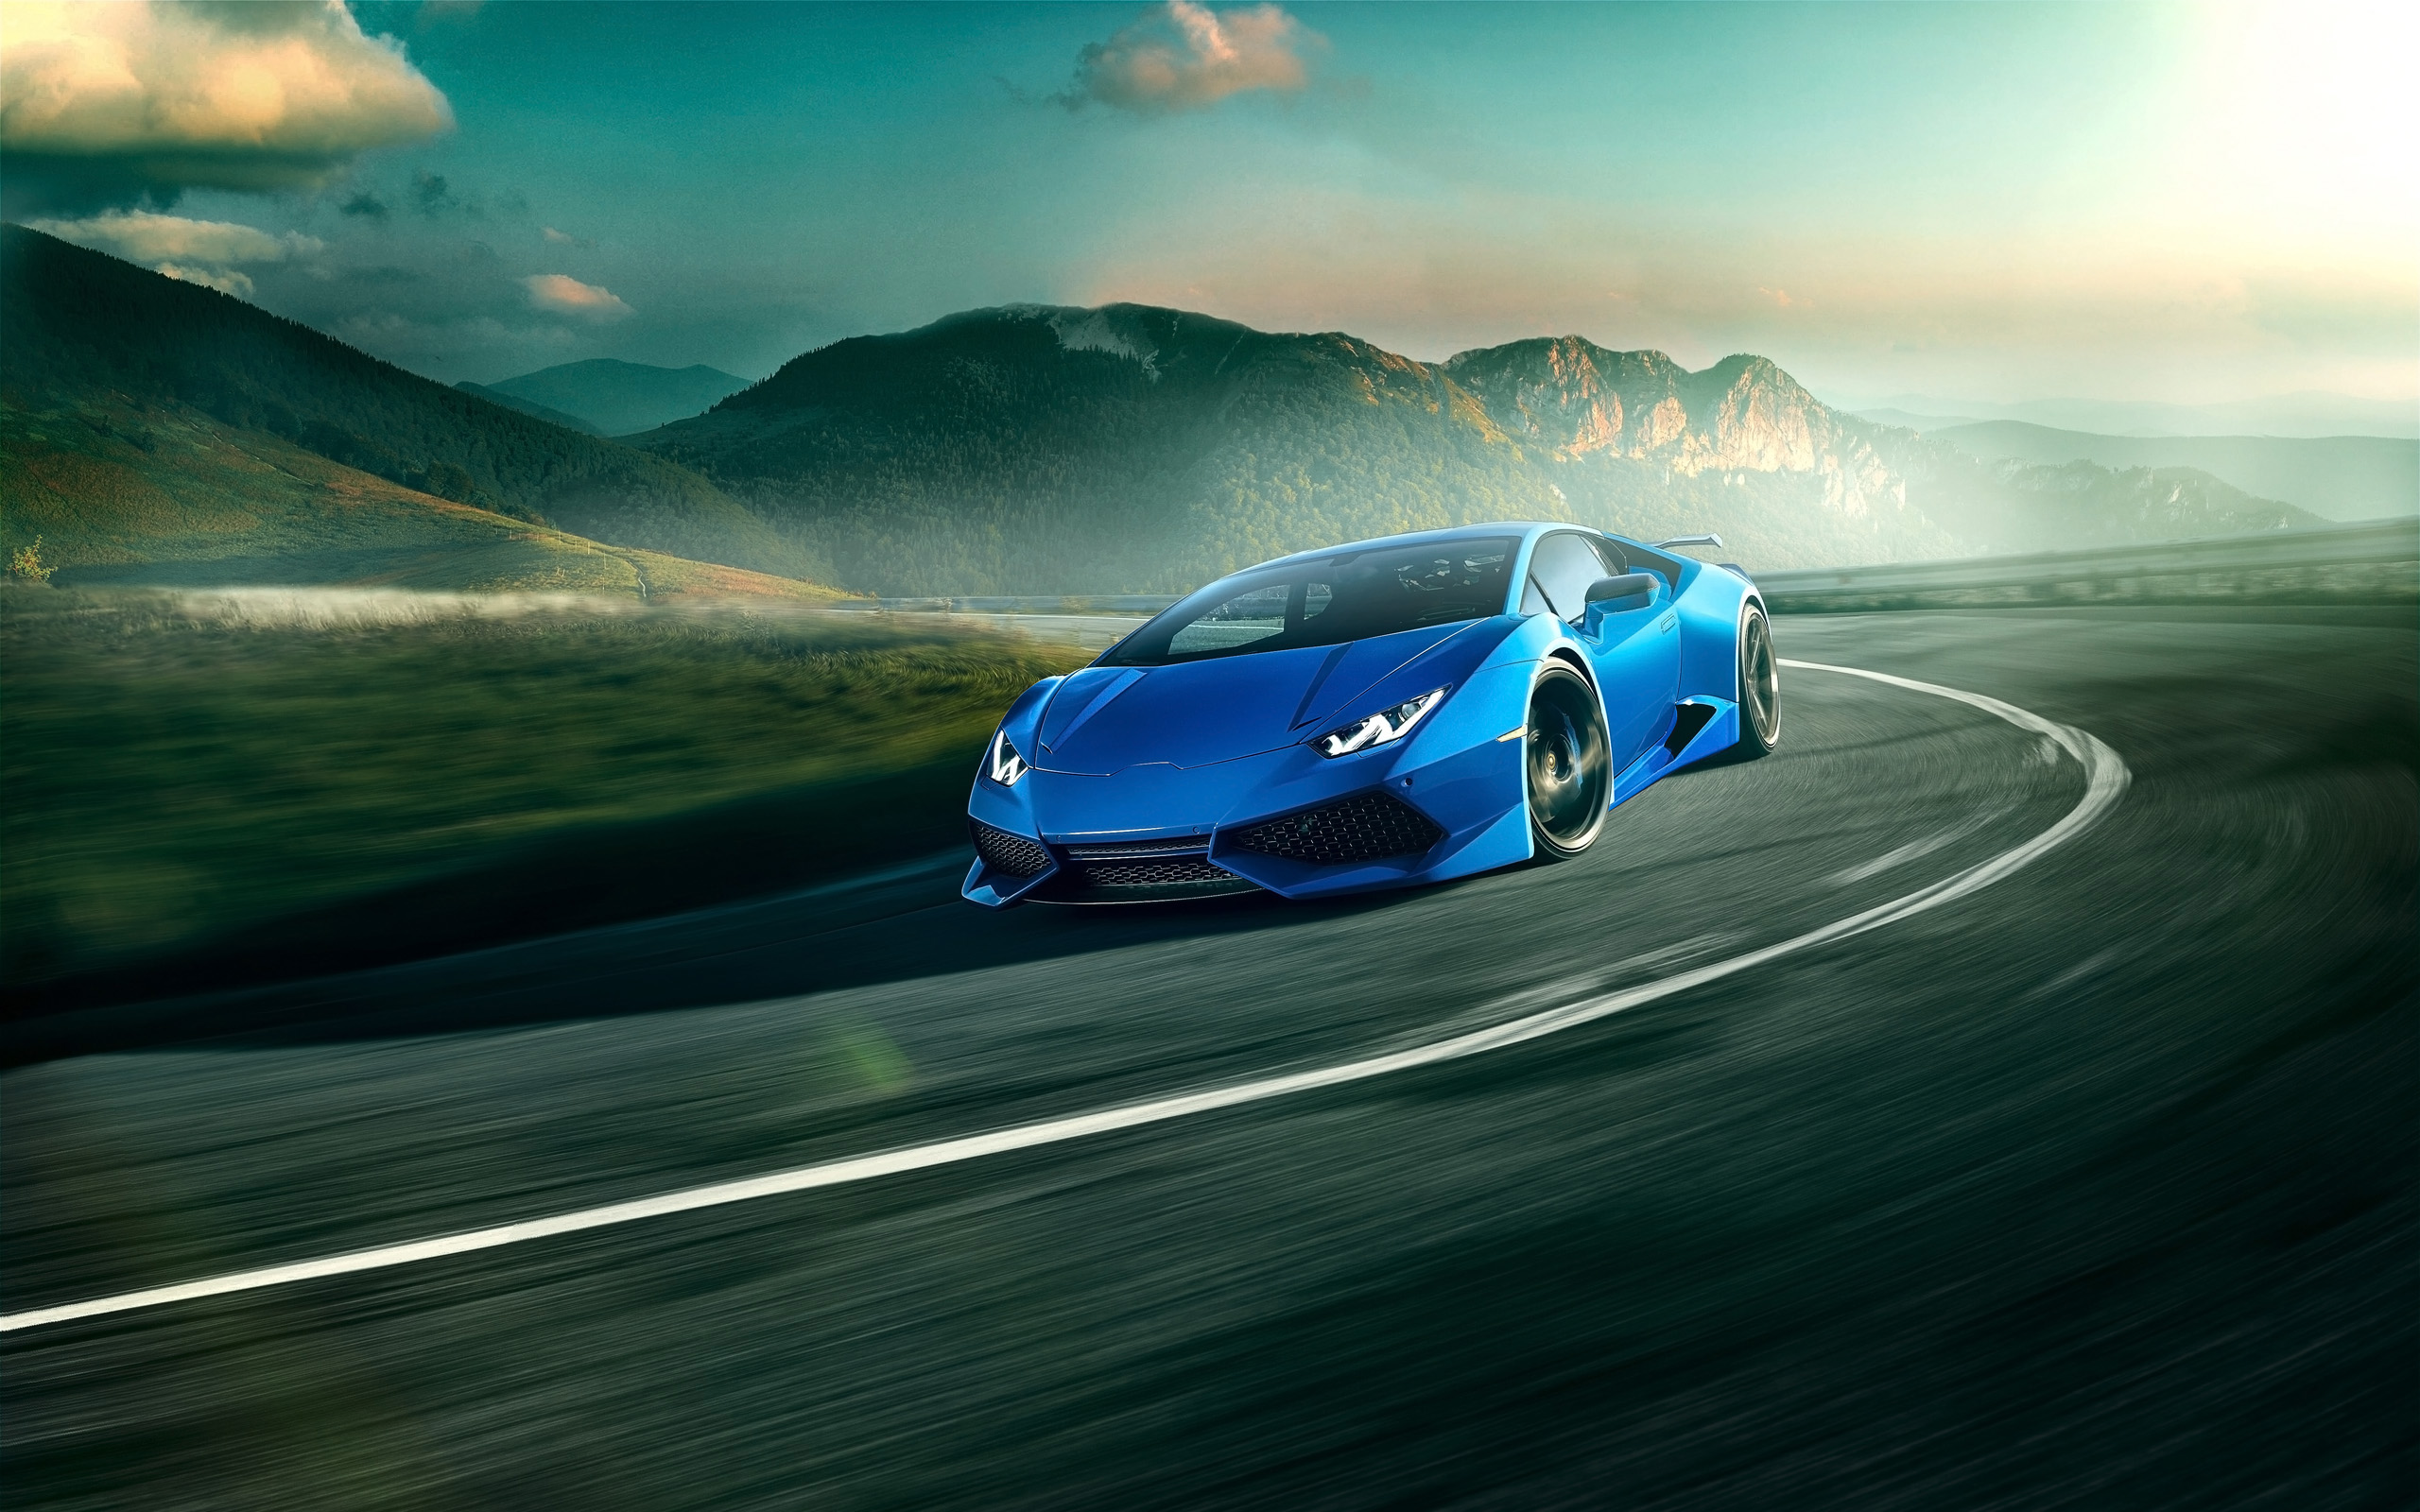 2015 novitec torado lamborghini huracan n largo 4 wallpaper | hd car